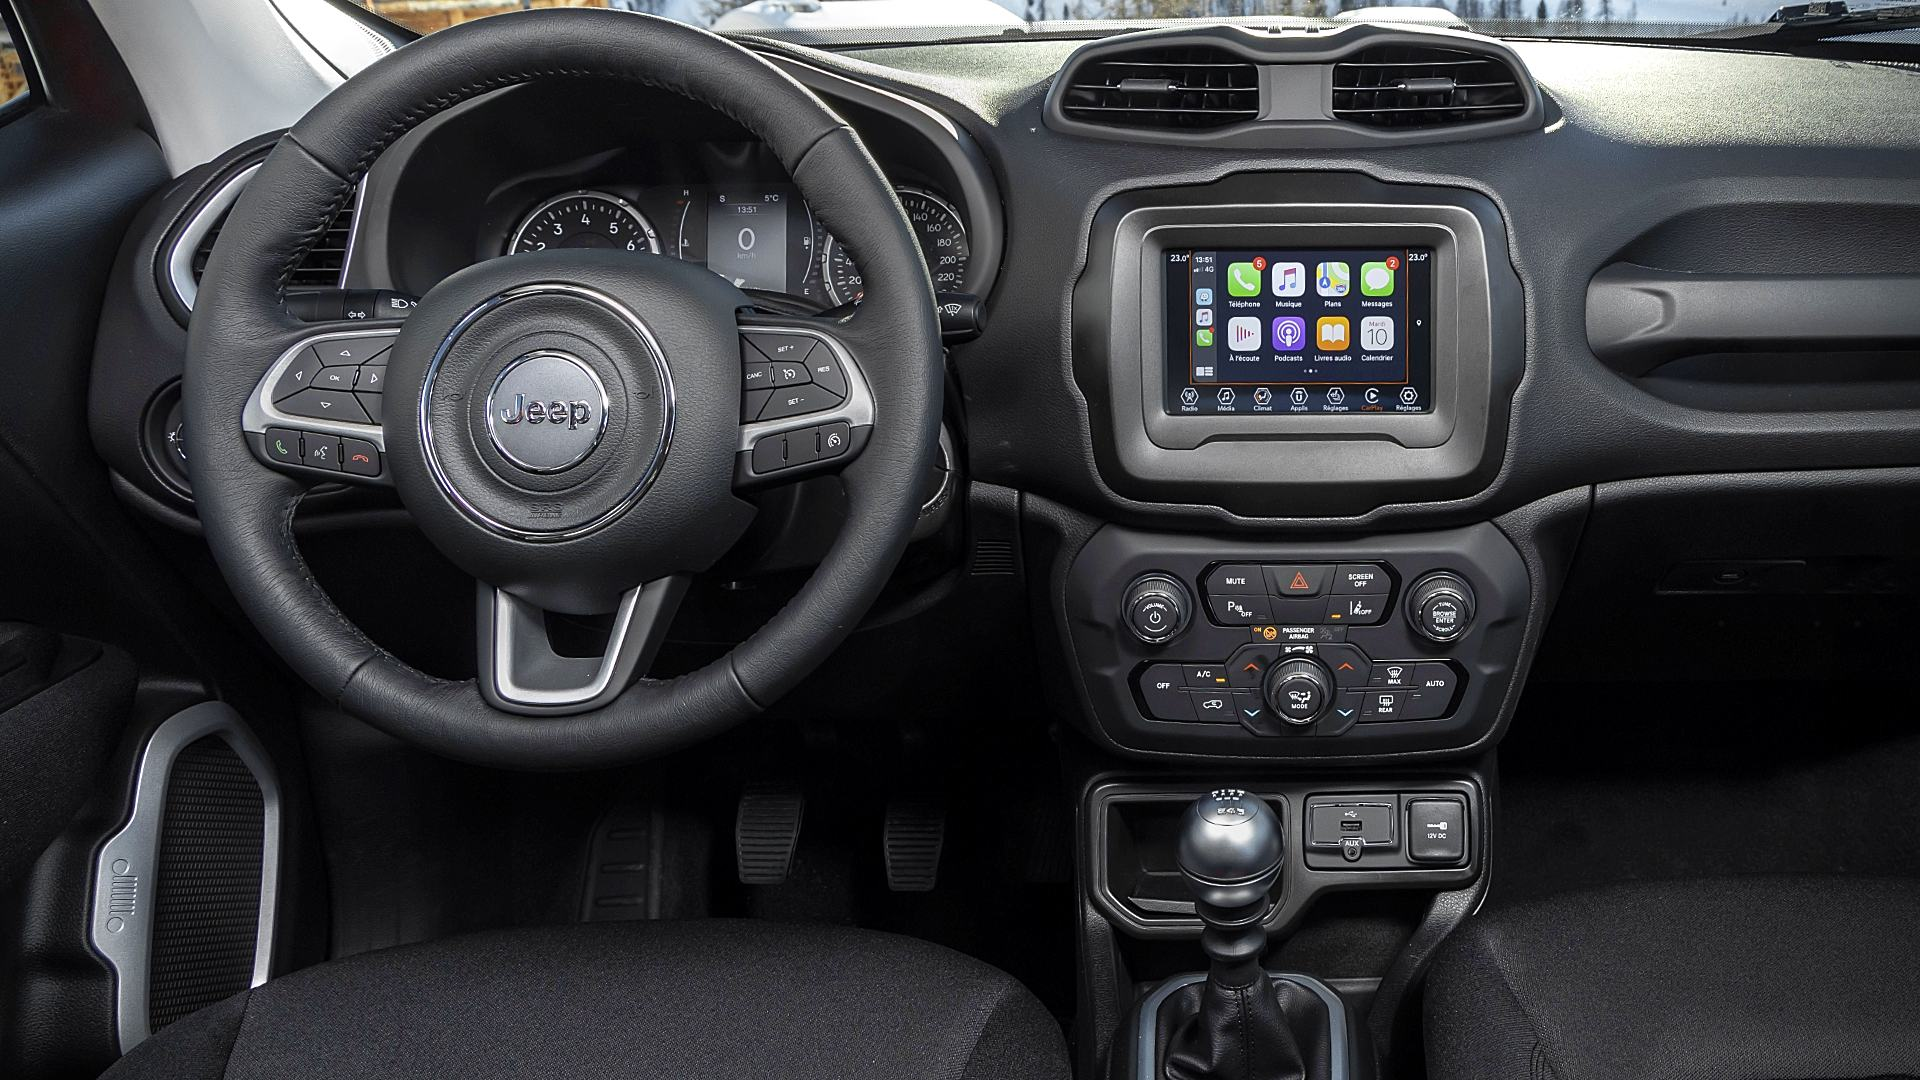 2021 Jeep Renegade Interior Inside